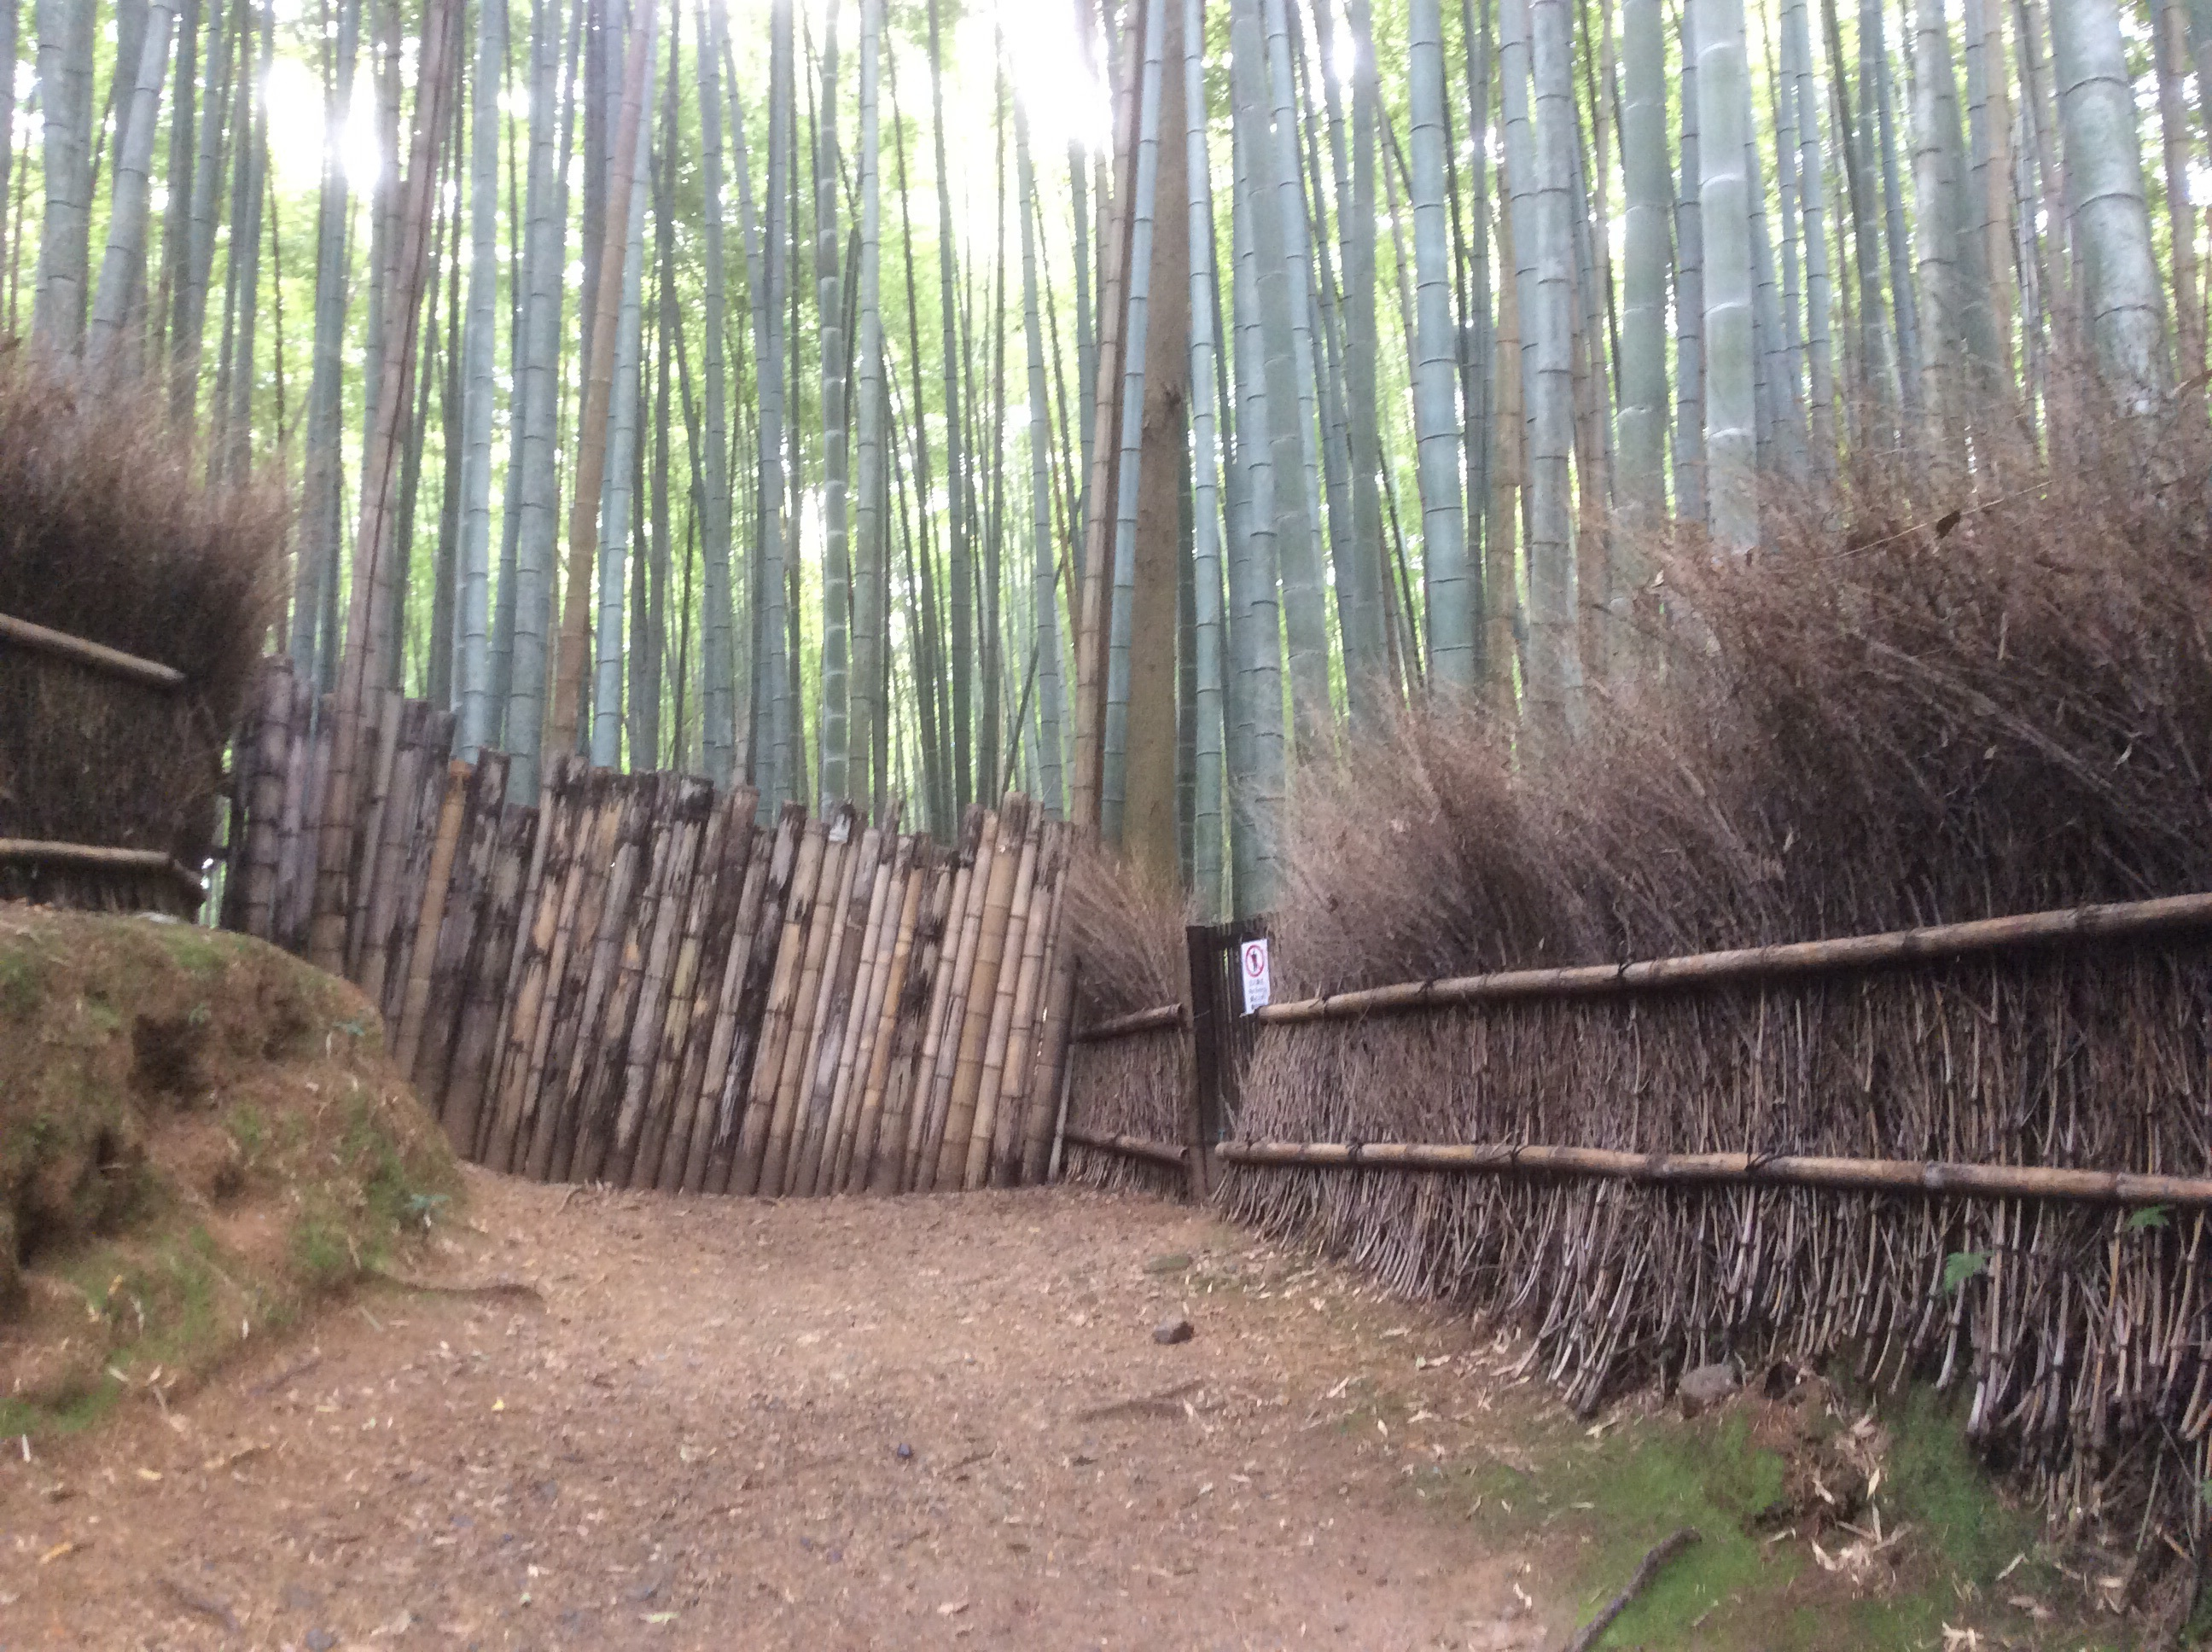 The bamboo forest path.